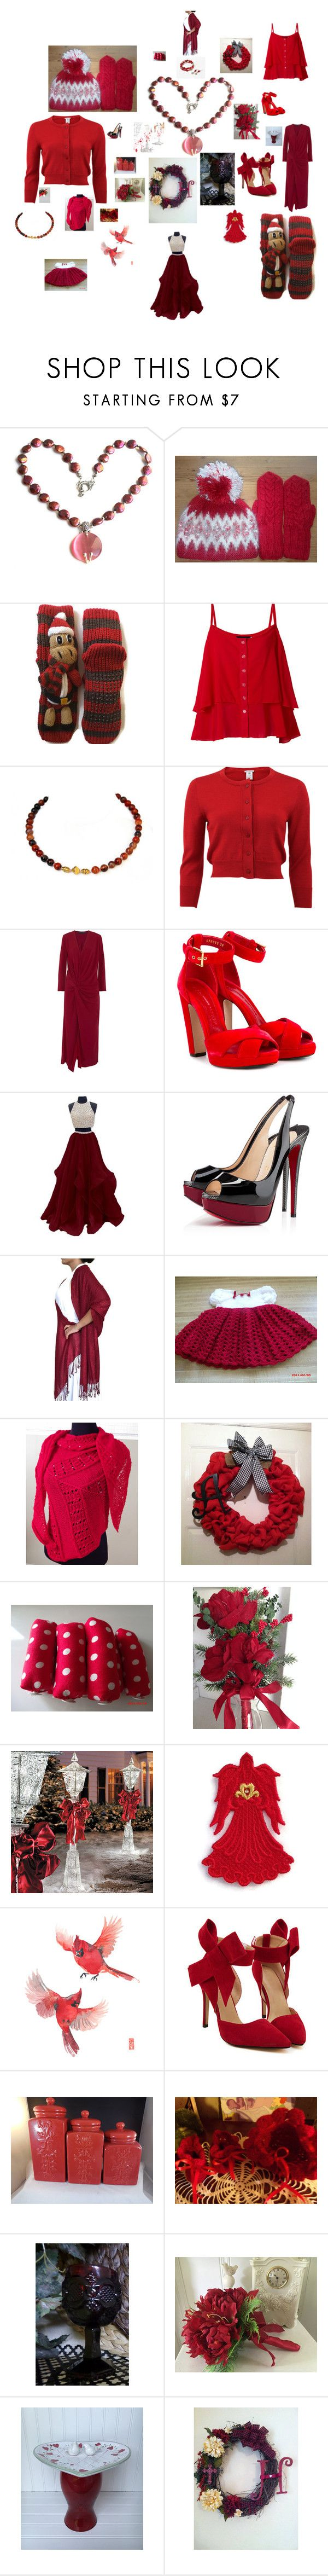 Hints Of Christmas by gillilandice on Polyvore featuring Maria Grachvogel, Oscar de la Renta, WithChic, Alexander McQueen, Christian Louboutin, Cadeau, Avon and Improvements